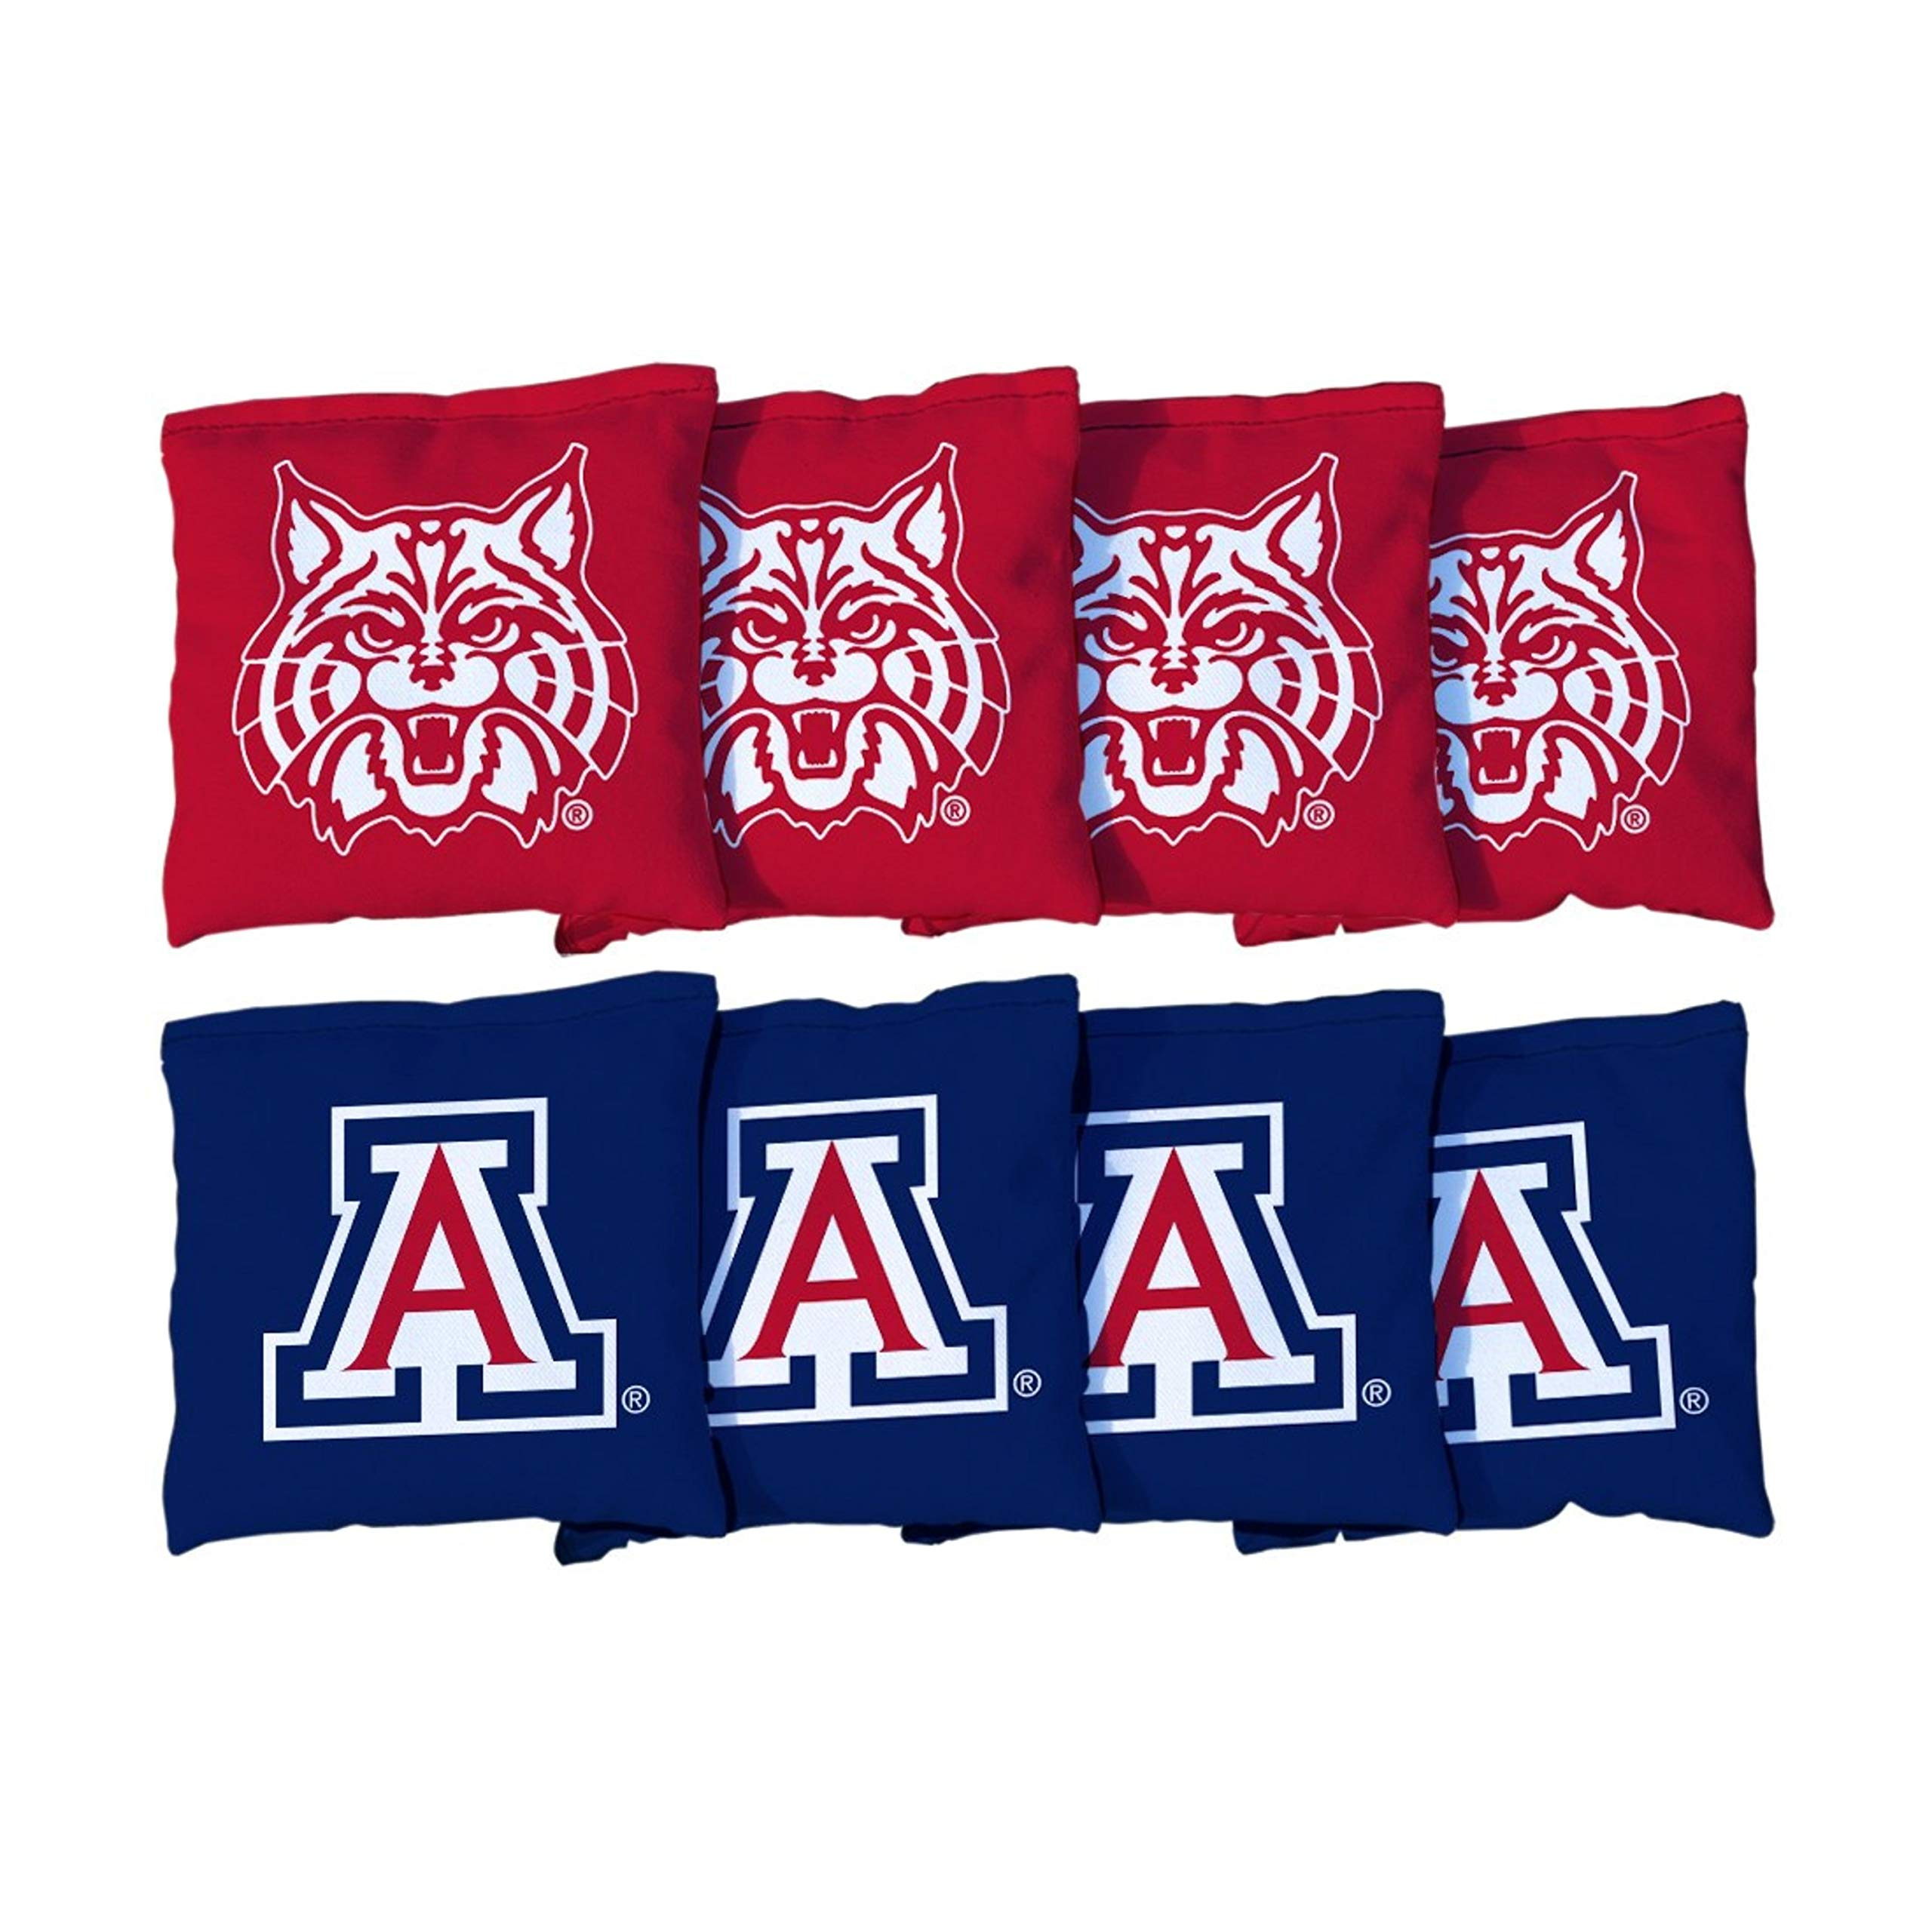 Victory Tailgate NCAA Regulation Cornhole Game Bag Set (8 Bags Included, Corn-Filled) - Arizona Wildcats